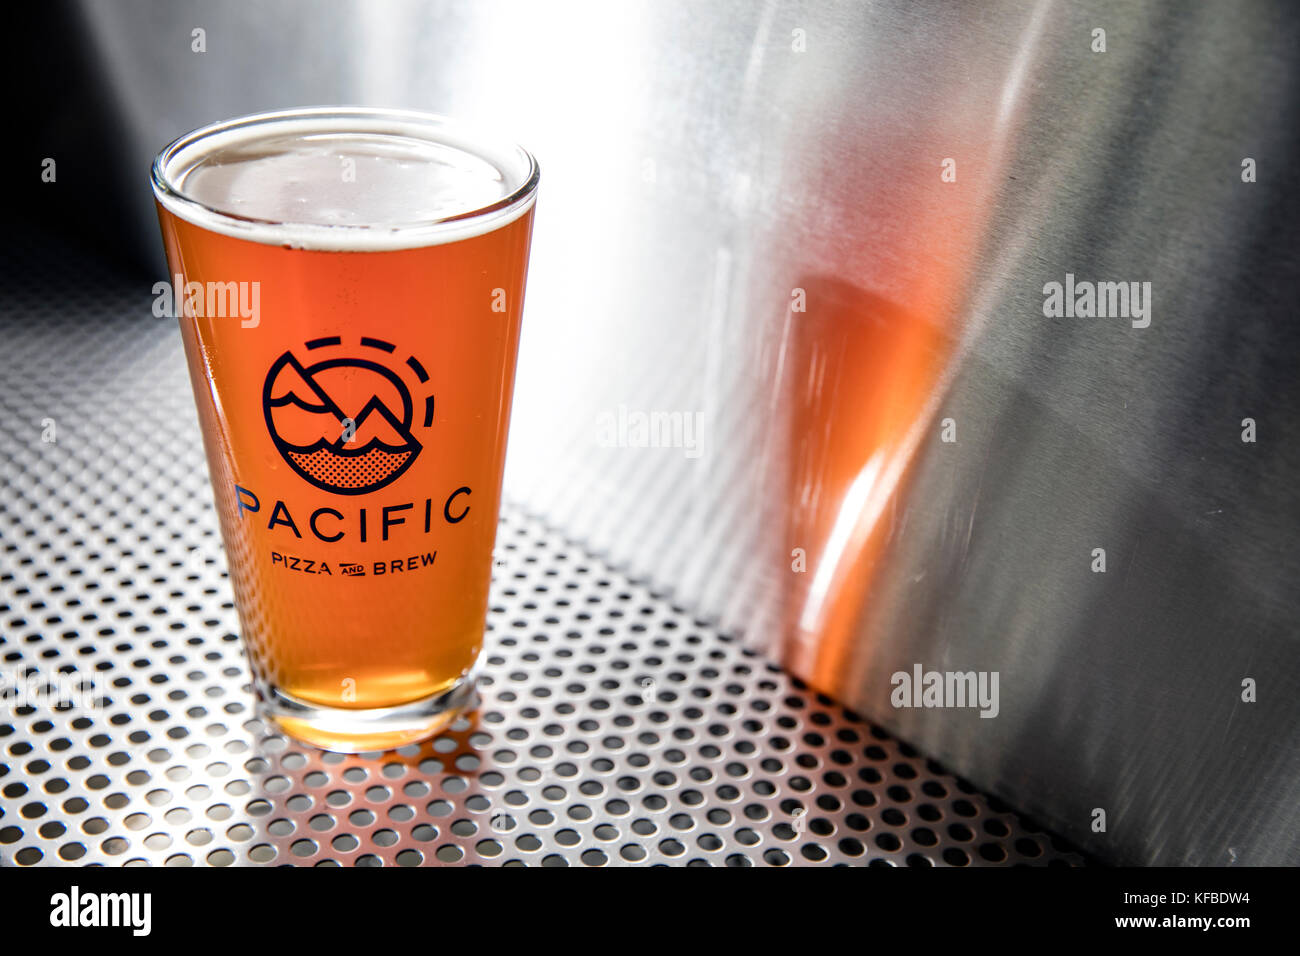 USA, Oregon, Bend, Pacific Pizza and Brew, pint glass of brew beer - Stock Image